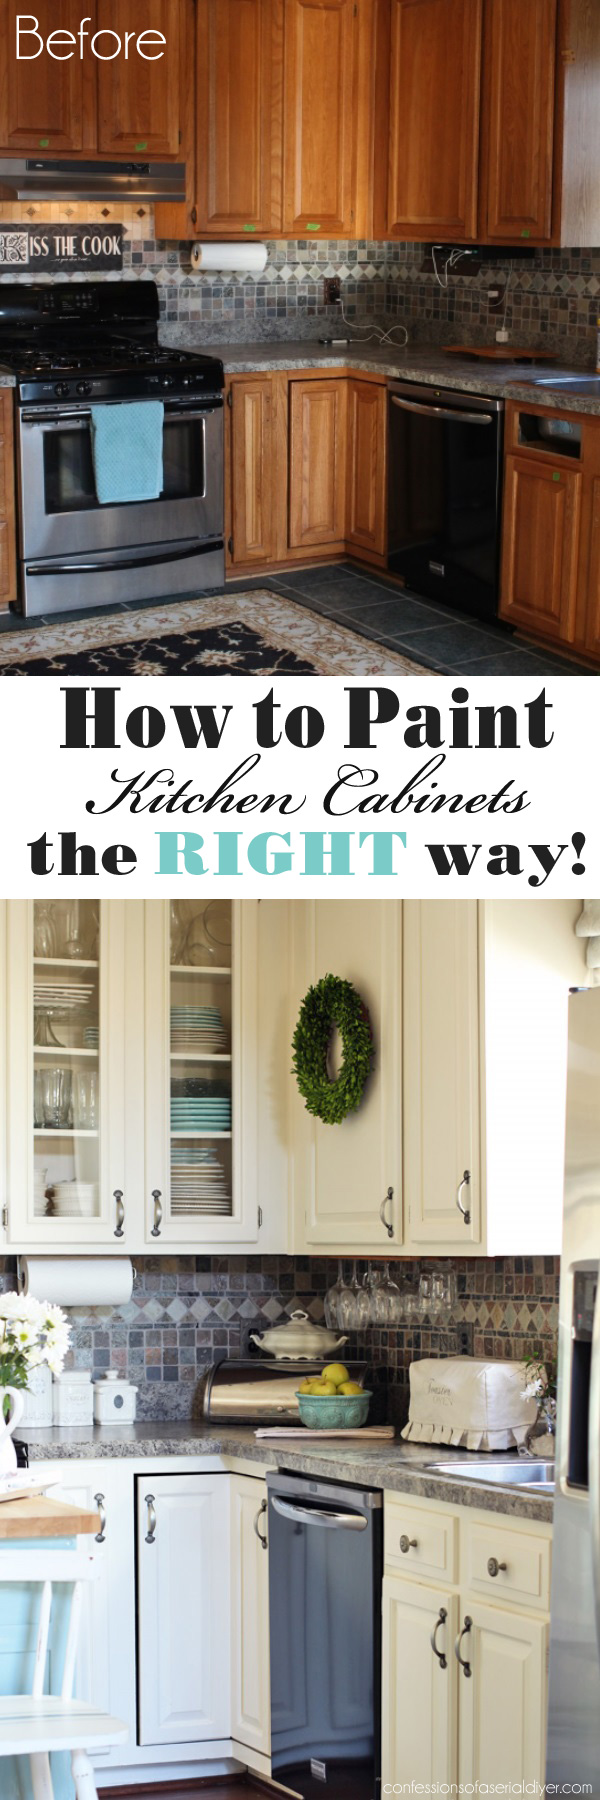 How to Paint Kitchen Cabinets the Right